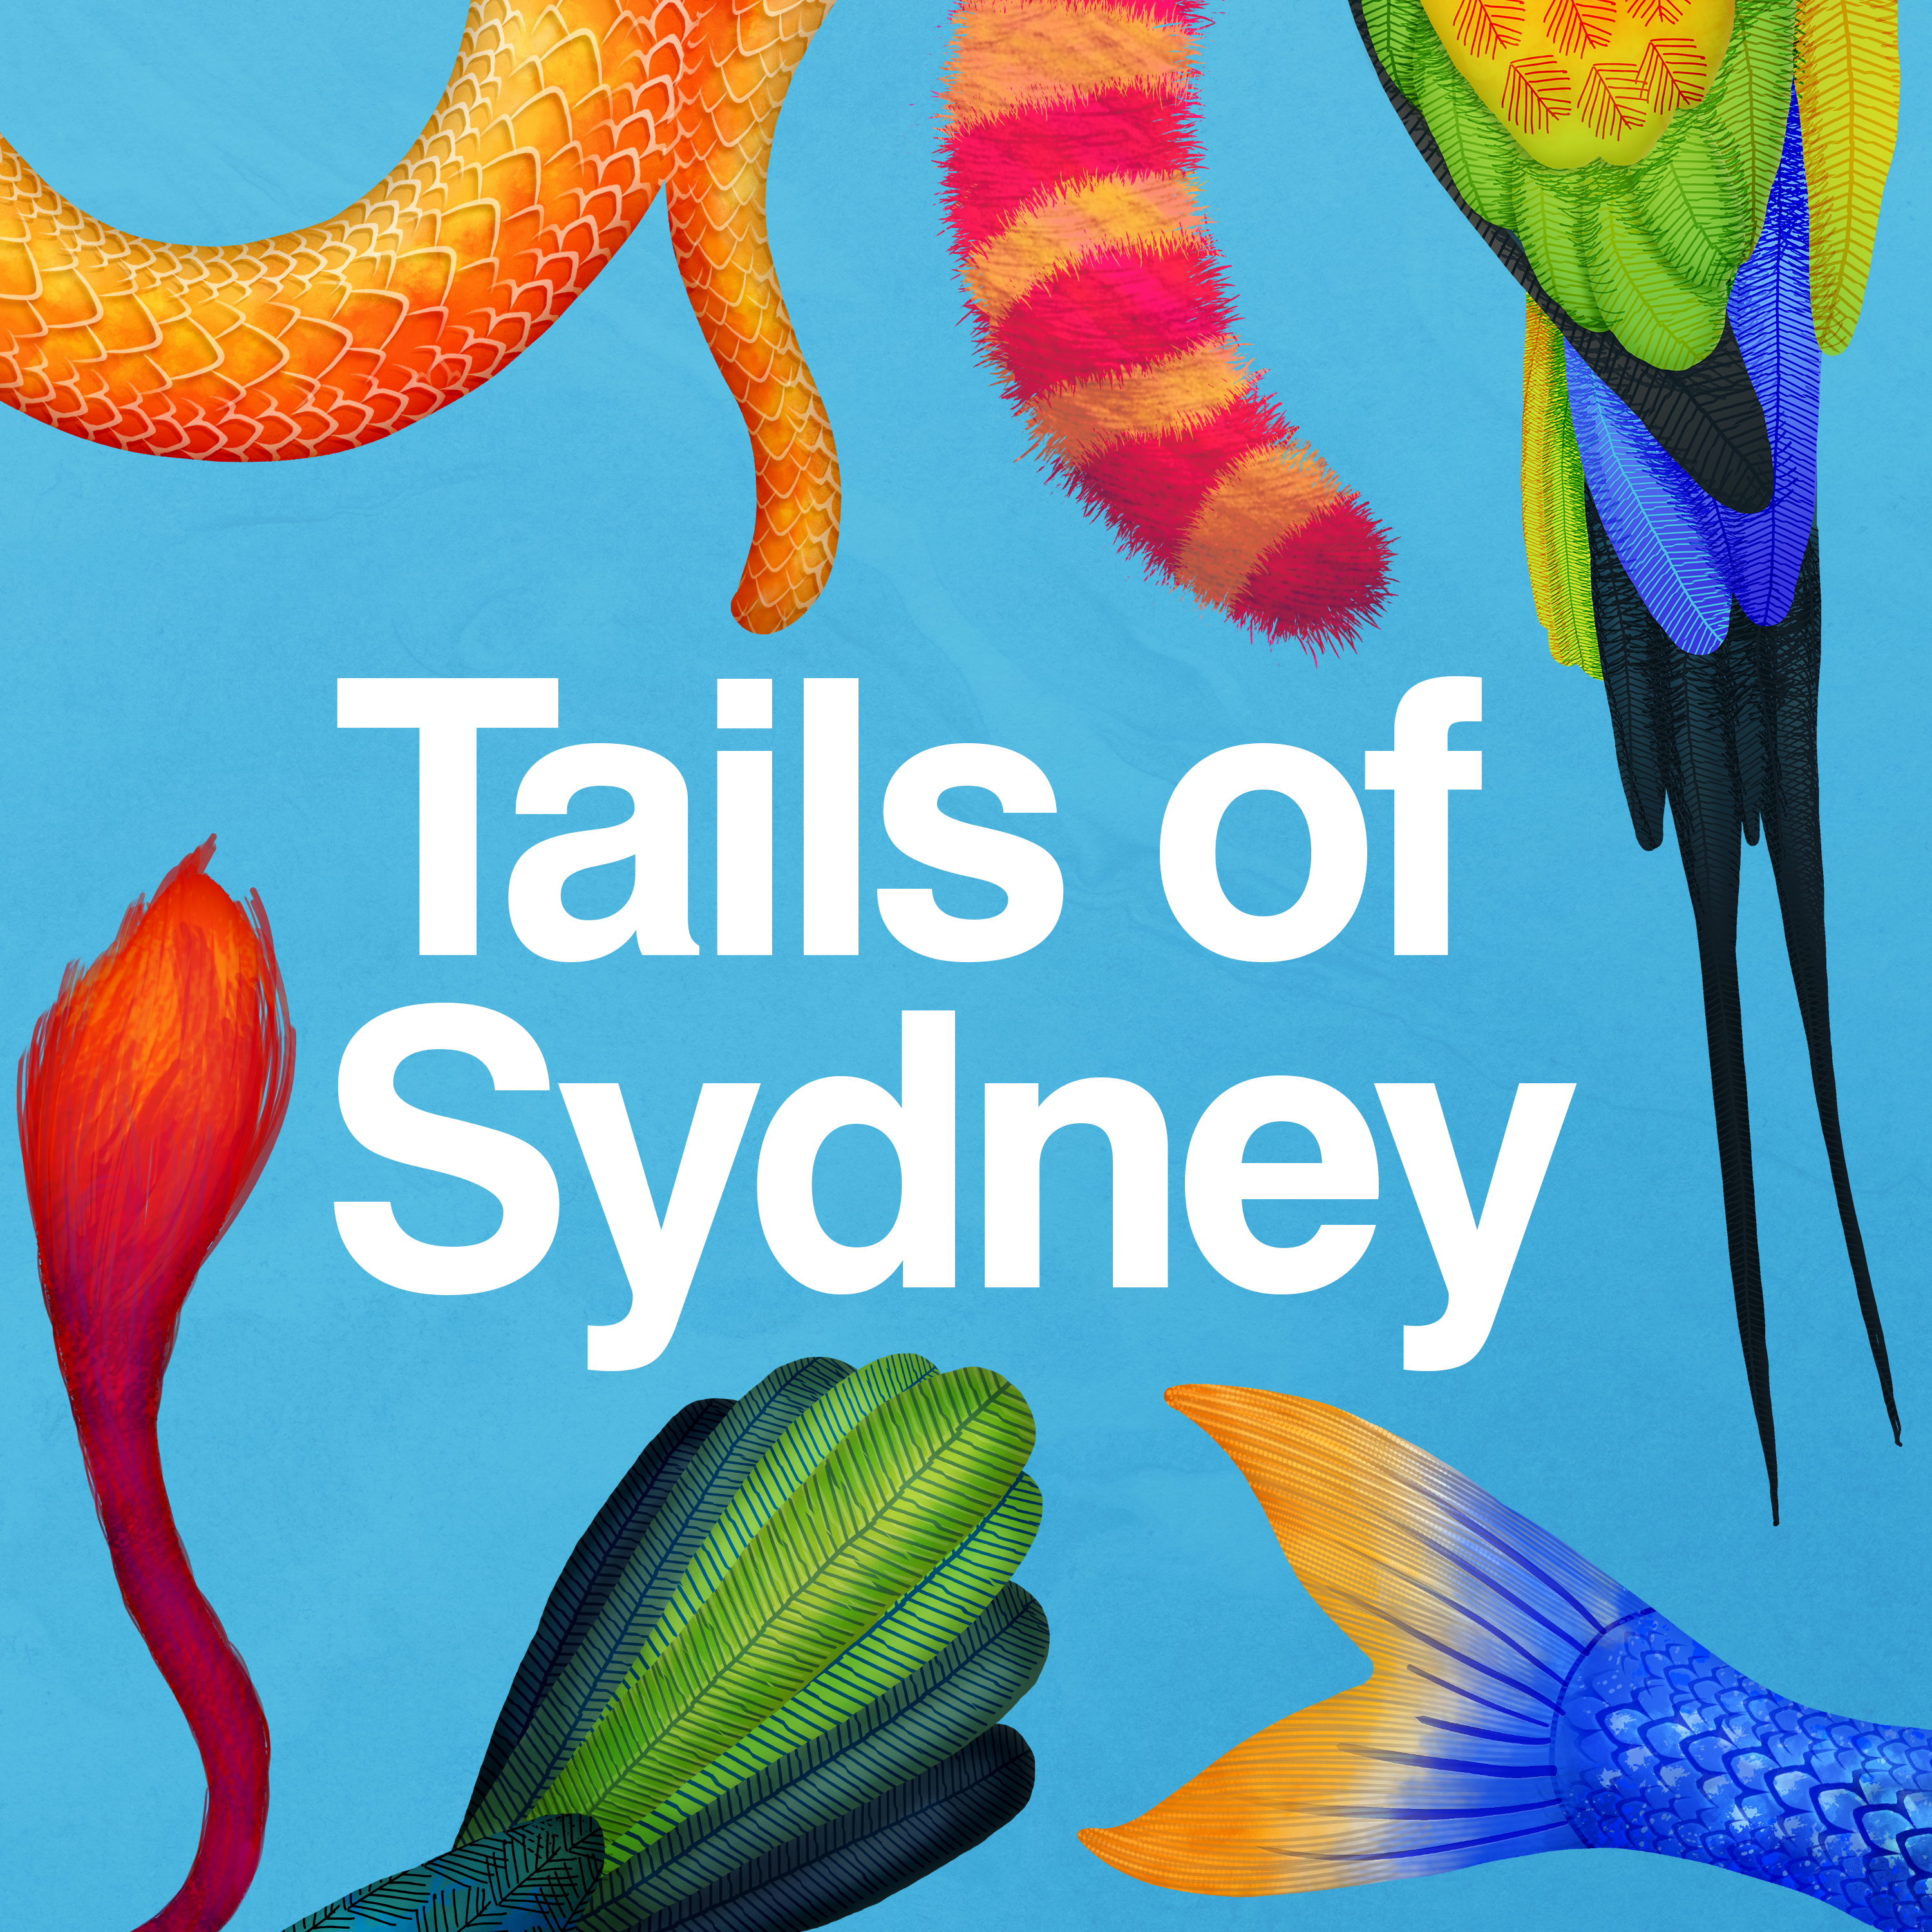 Tails of Sydney